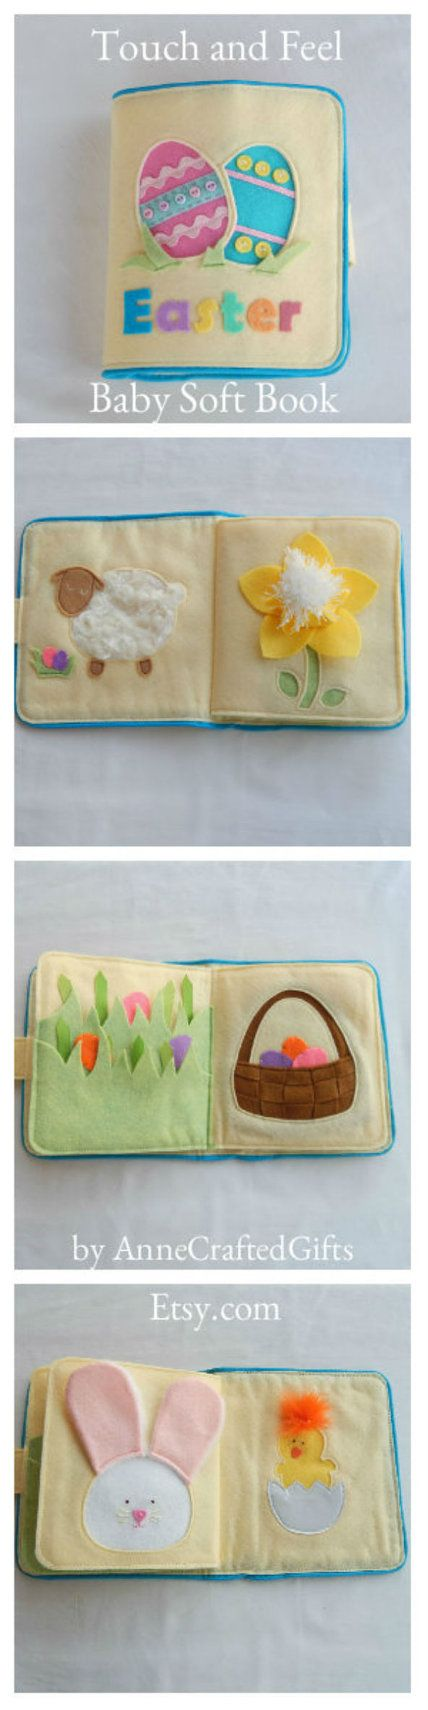 This unique quiet book is a cute gift idea for your little one's Easter basket. A fun touch and feel sensory book for a baby. #AnneCraftedGifts